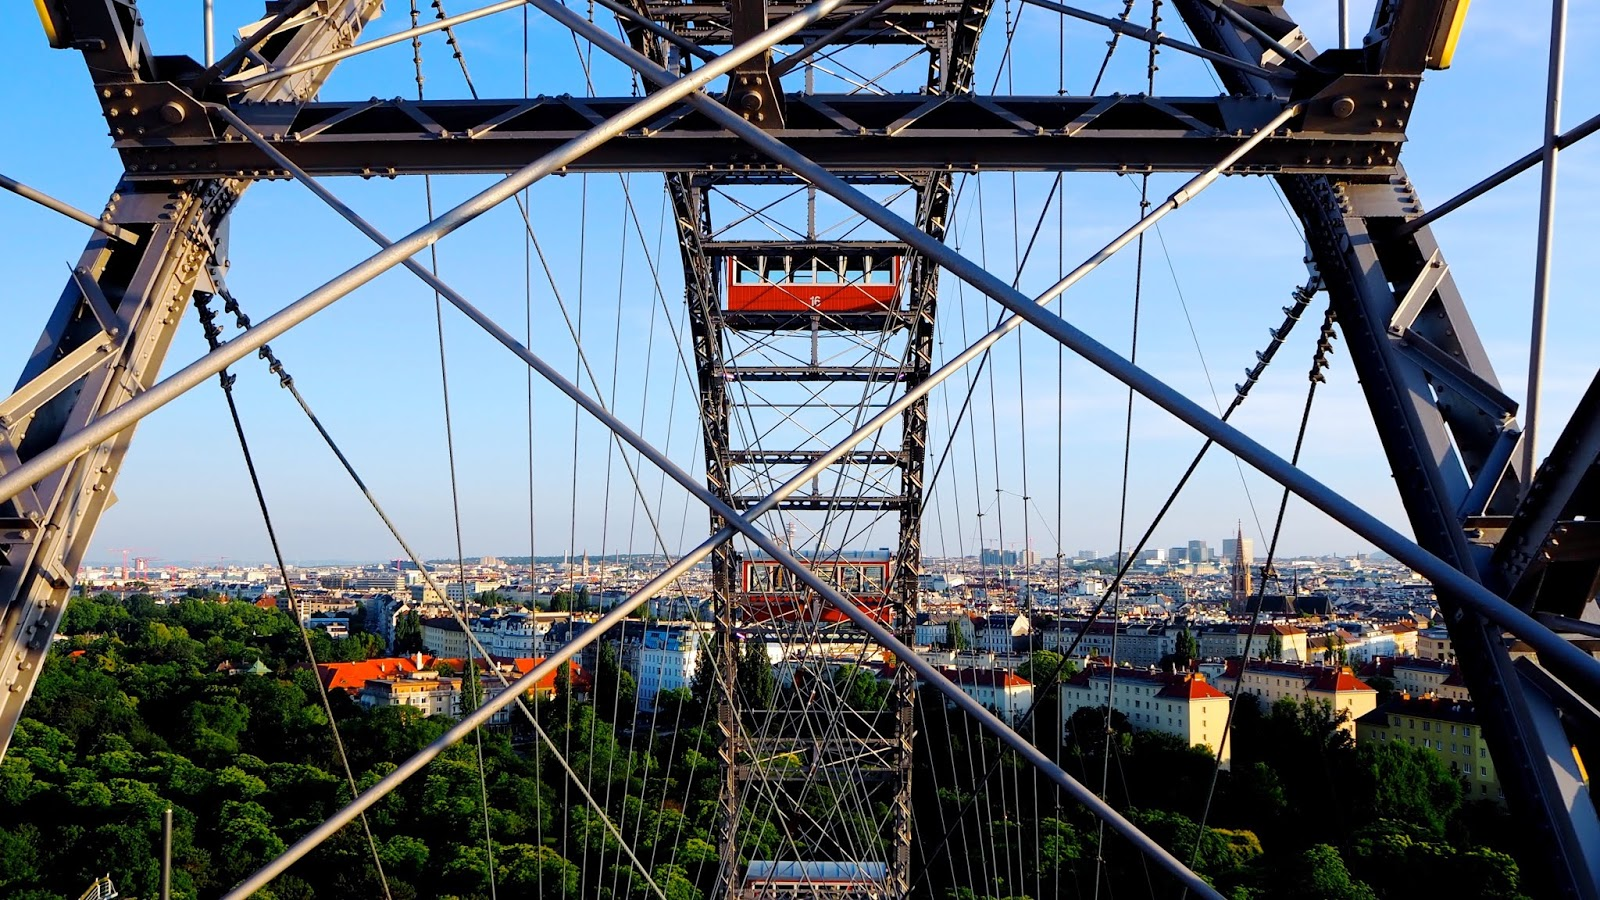 View from the top of the Riesenrad Ferris Wheel in Vienna